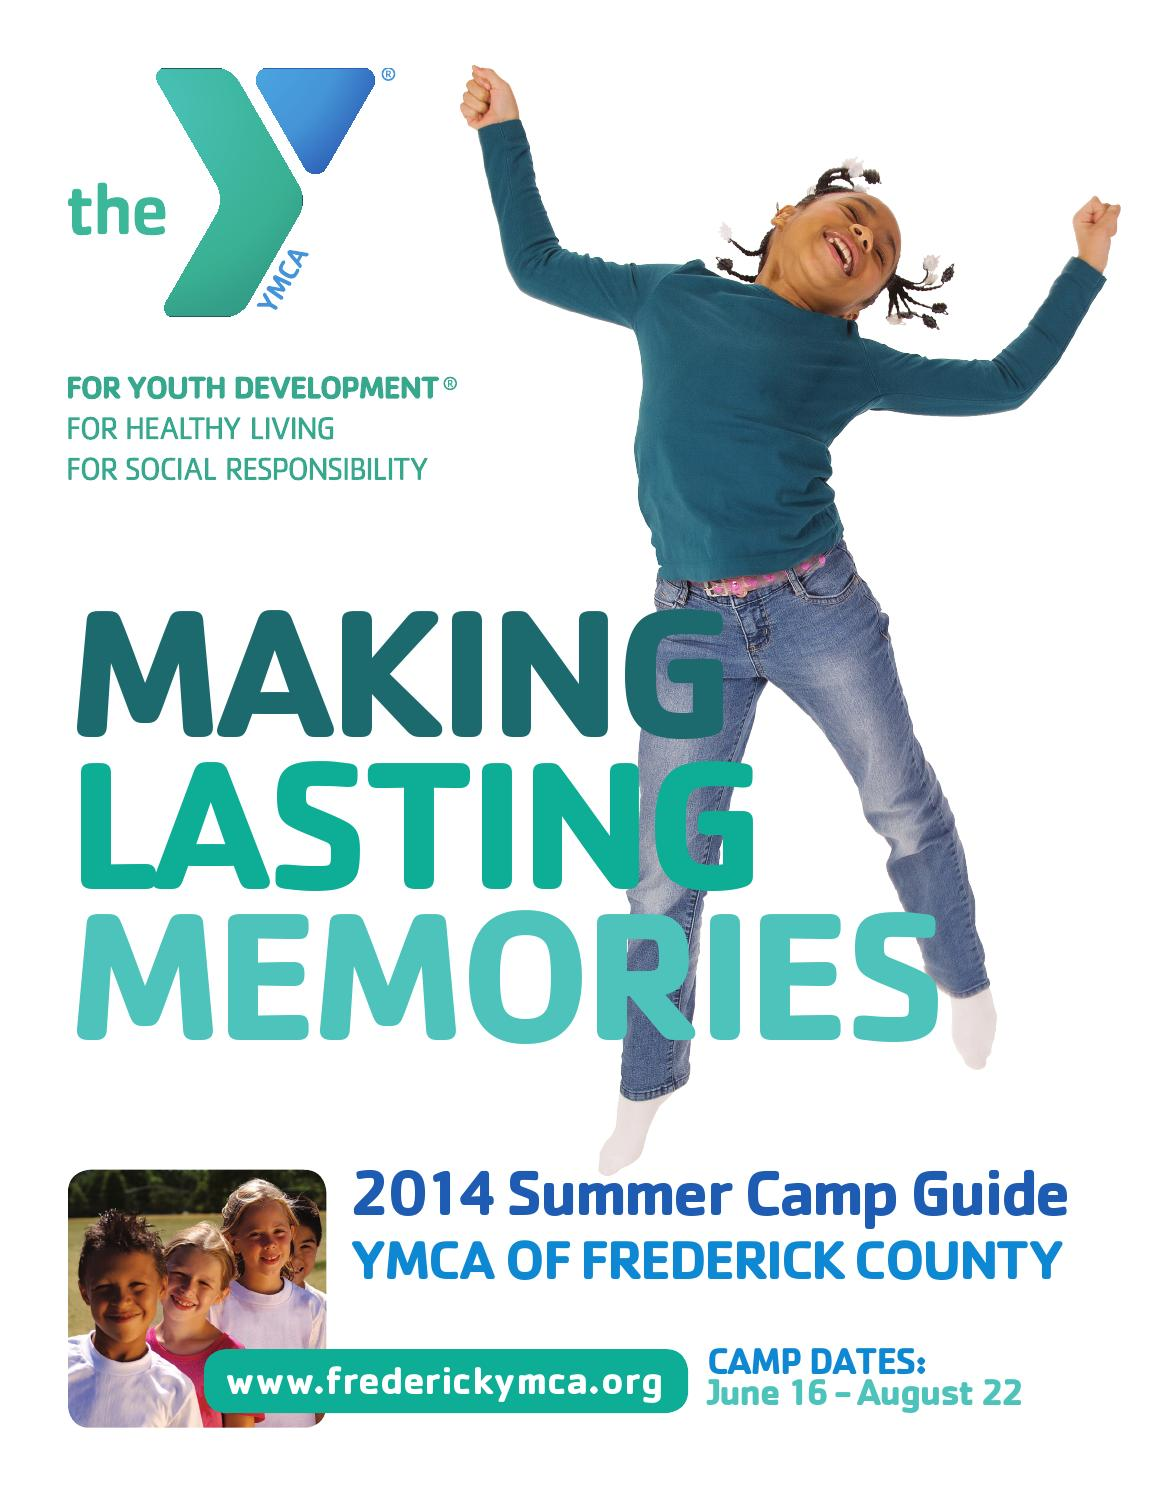 YMCA OF FREDERICK COUNTY Summer Day Camp Guide 2014 by YMCA OF FREDERICK COUNTY - issuu